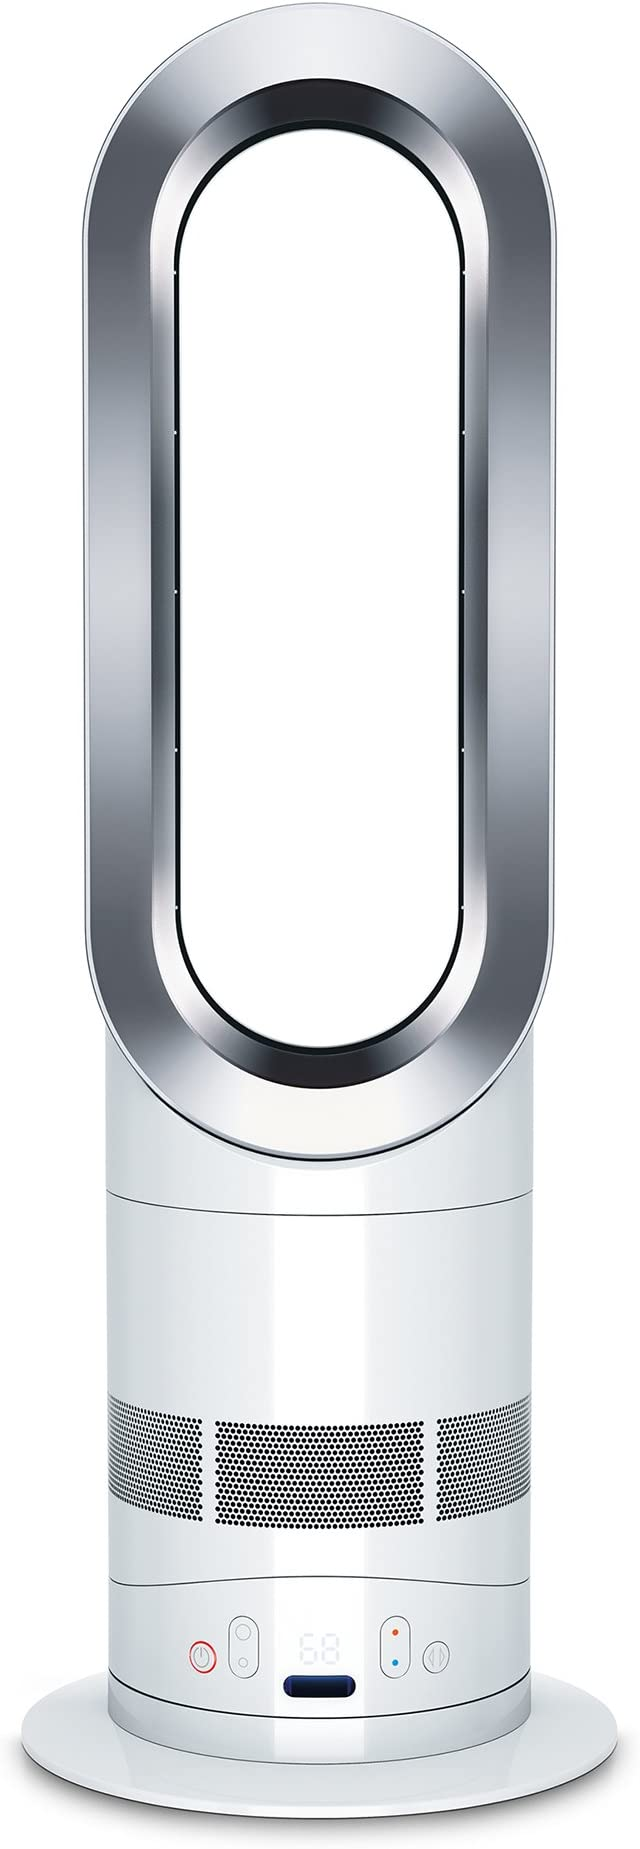 Dyson AM05 Hot + Cool Fan Heater, White/Silver